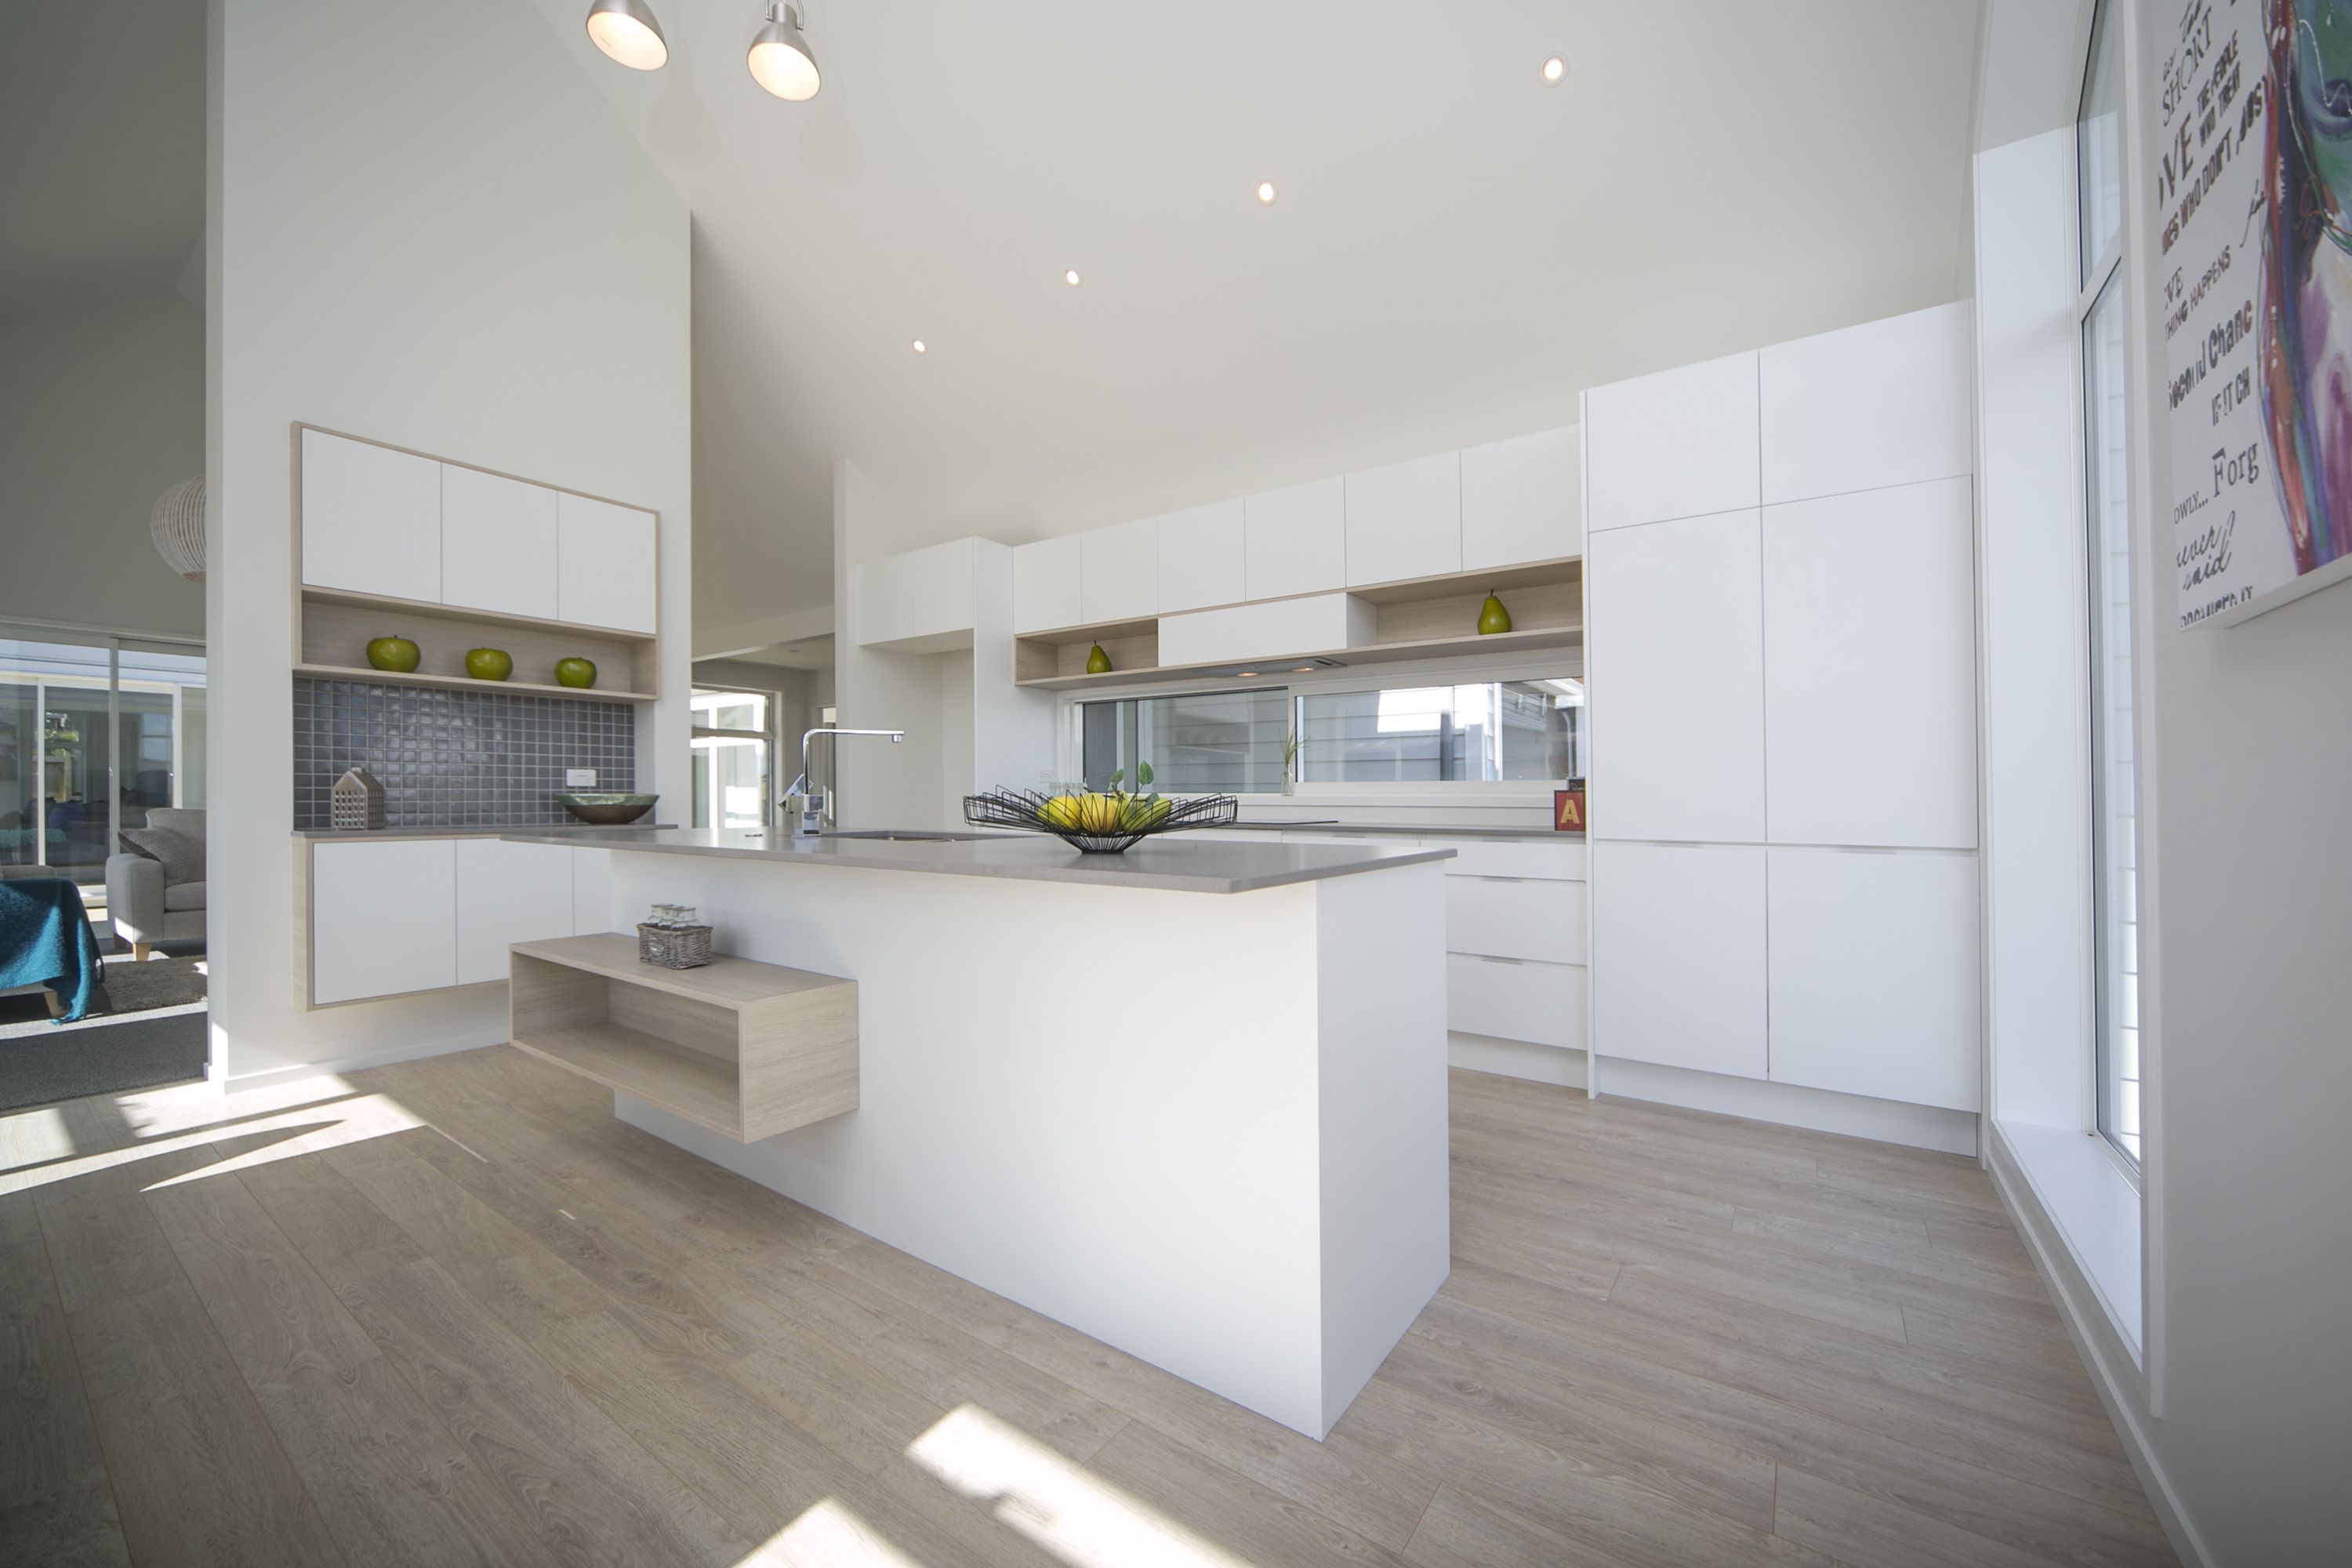 cabinetry bestwood melamine simply white wilderness finish laser kitchen design and supplies